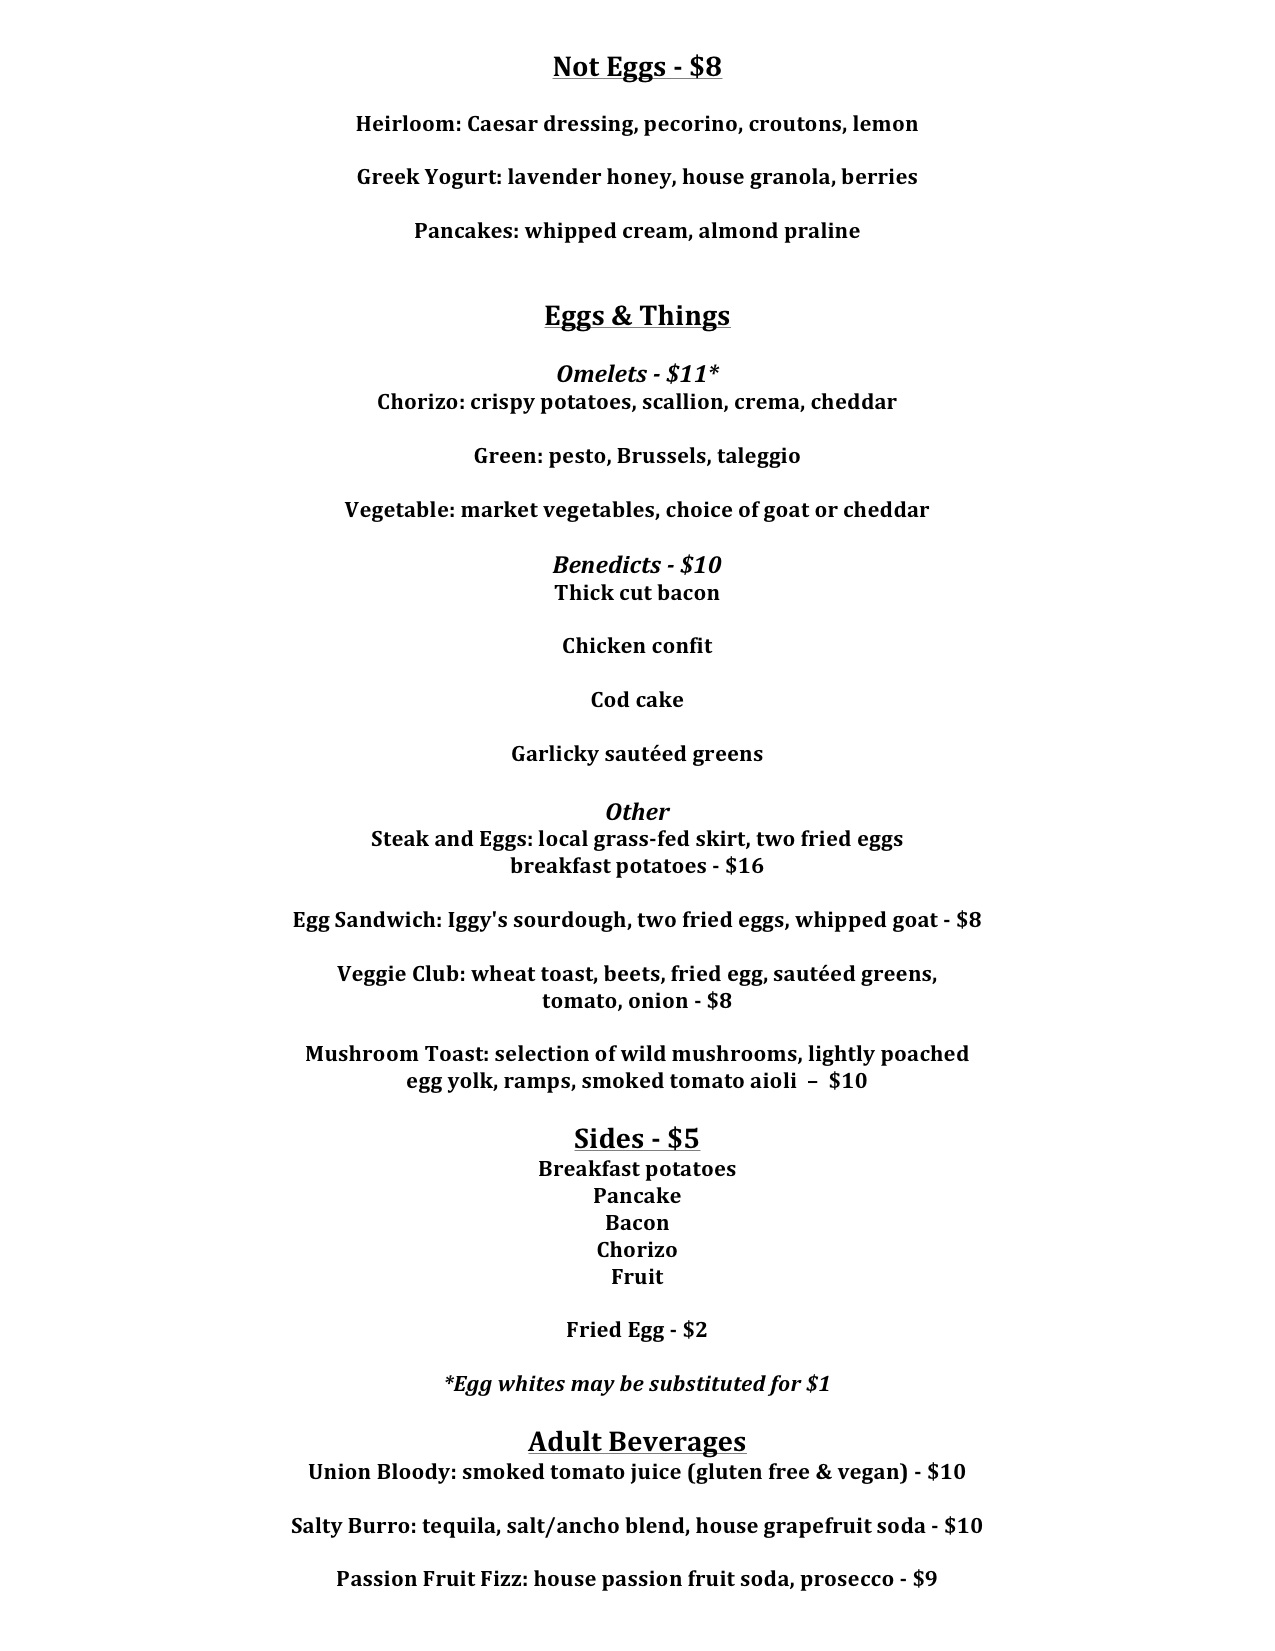 Brass Union - Brunch Menu